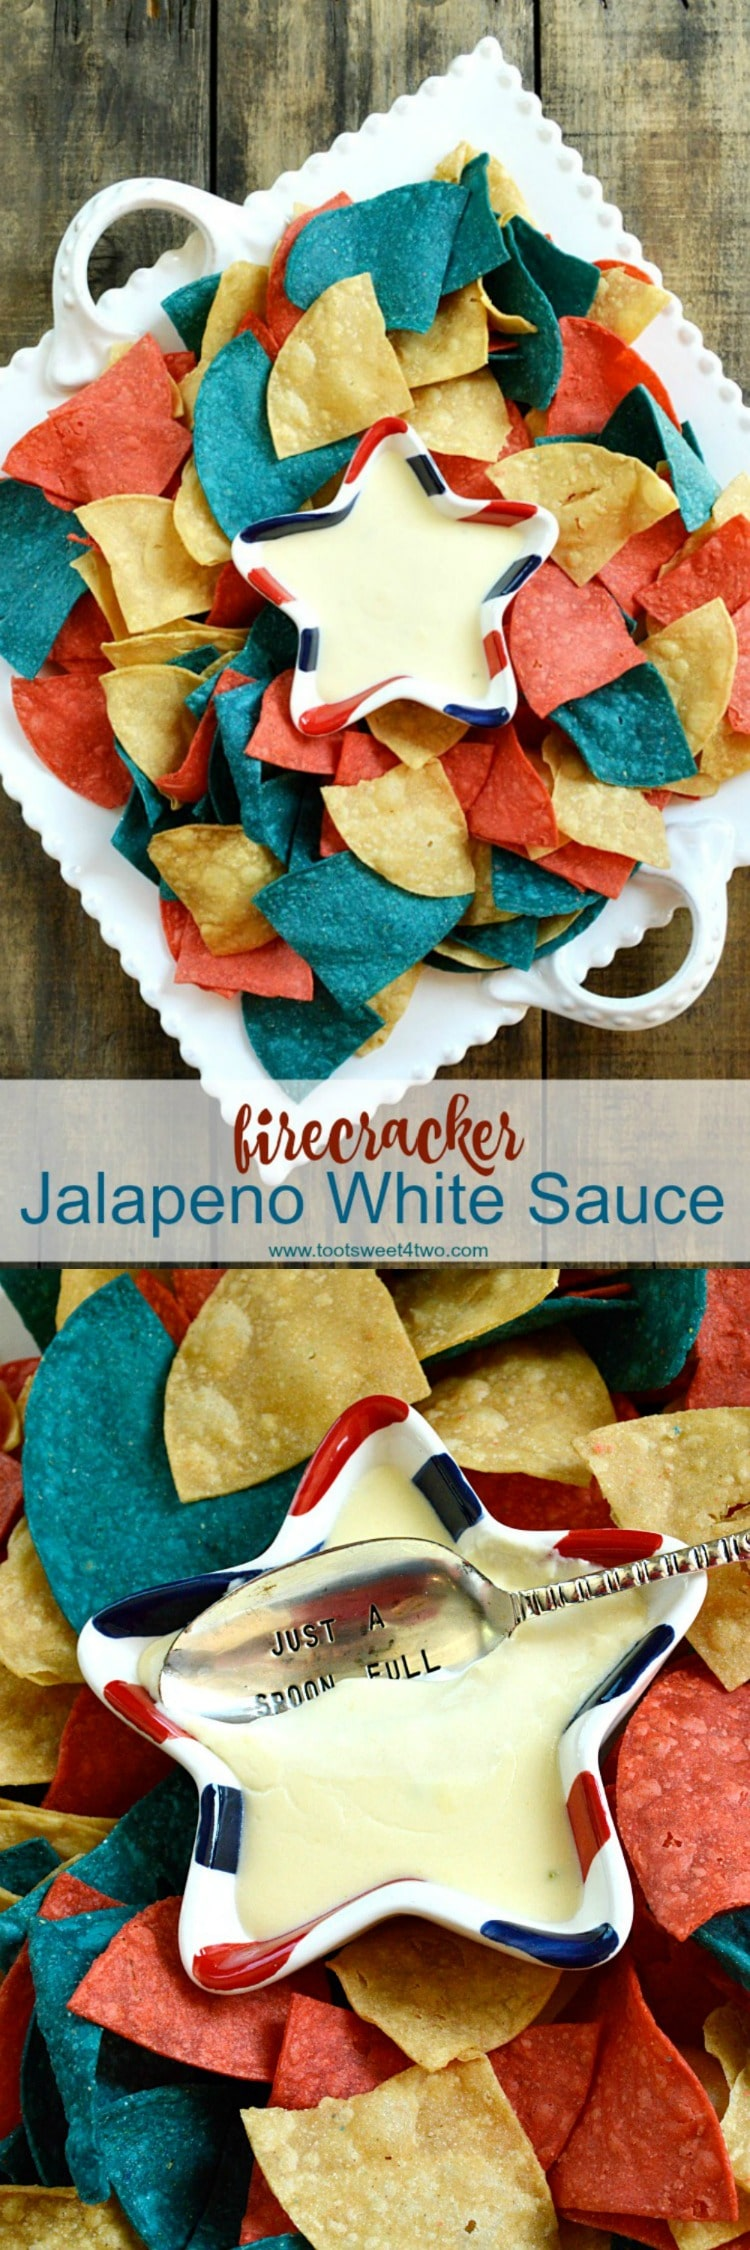 Creamy and delicious, with just a hint of heat from jarred jalapenos, Firecracker Jalapeno White Sauce is a homemade recipe that replicates the dipping sauce served with chips in Mexican restaurants. | www.tootsweet4two.com